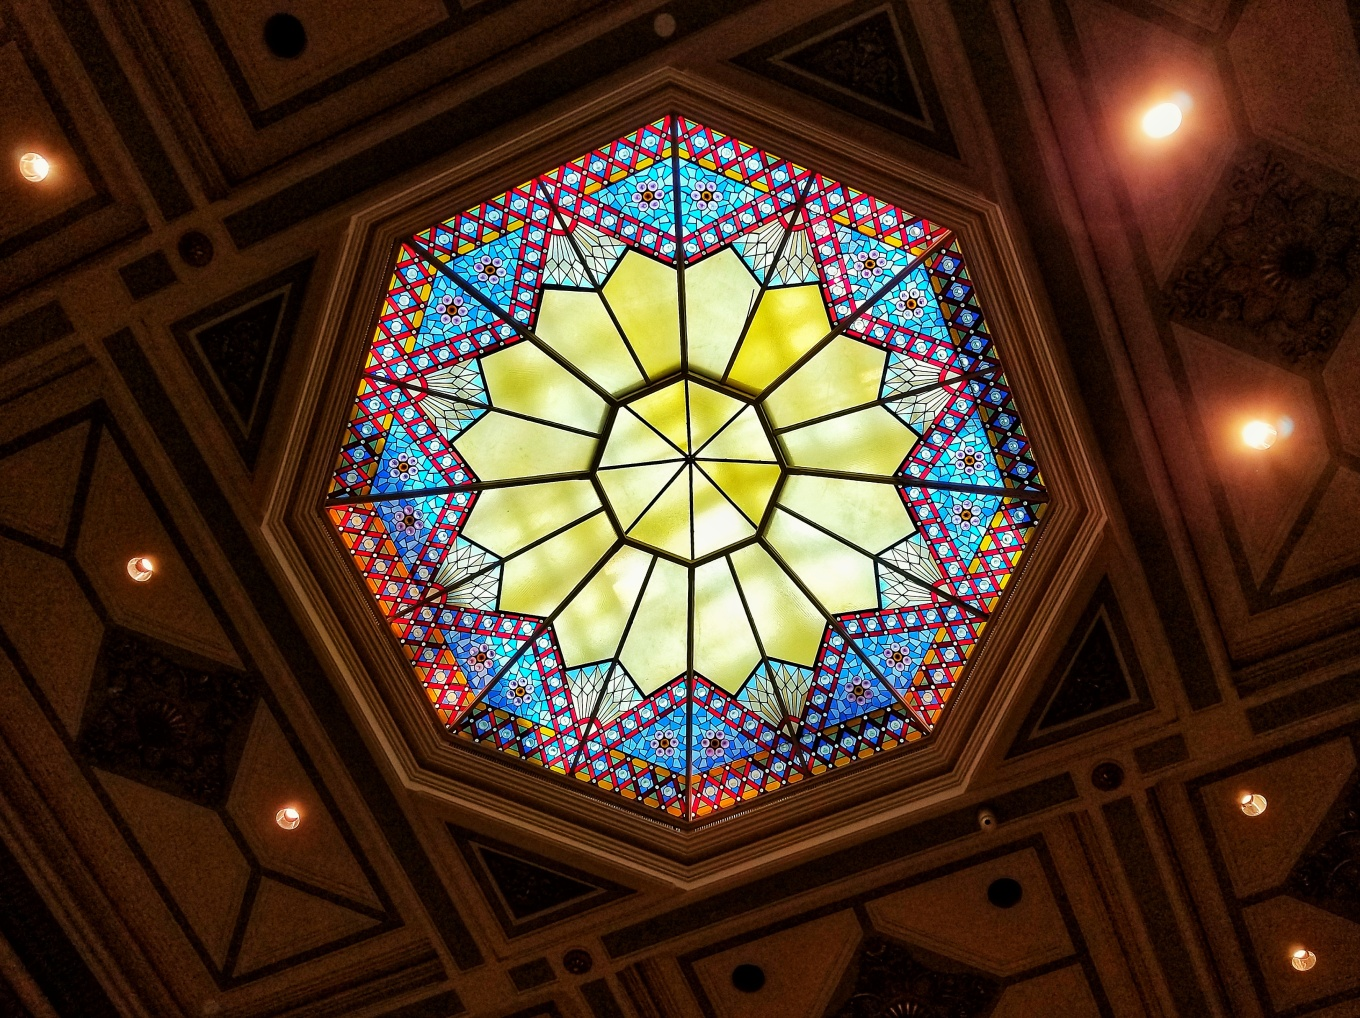 Stained glass in the ceiling of the National Portrait Gallery in Washington, D.C.